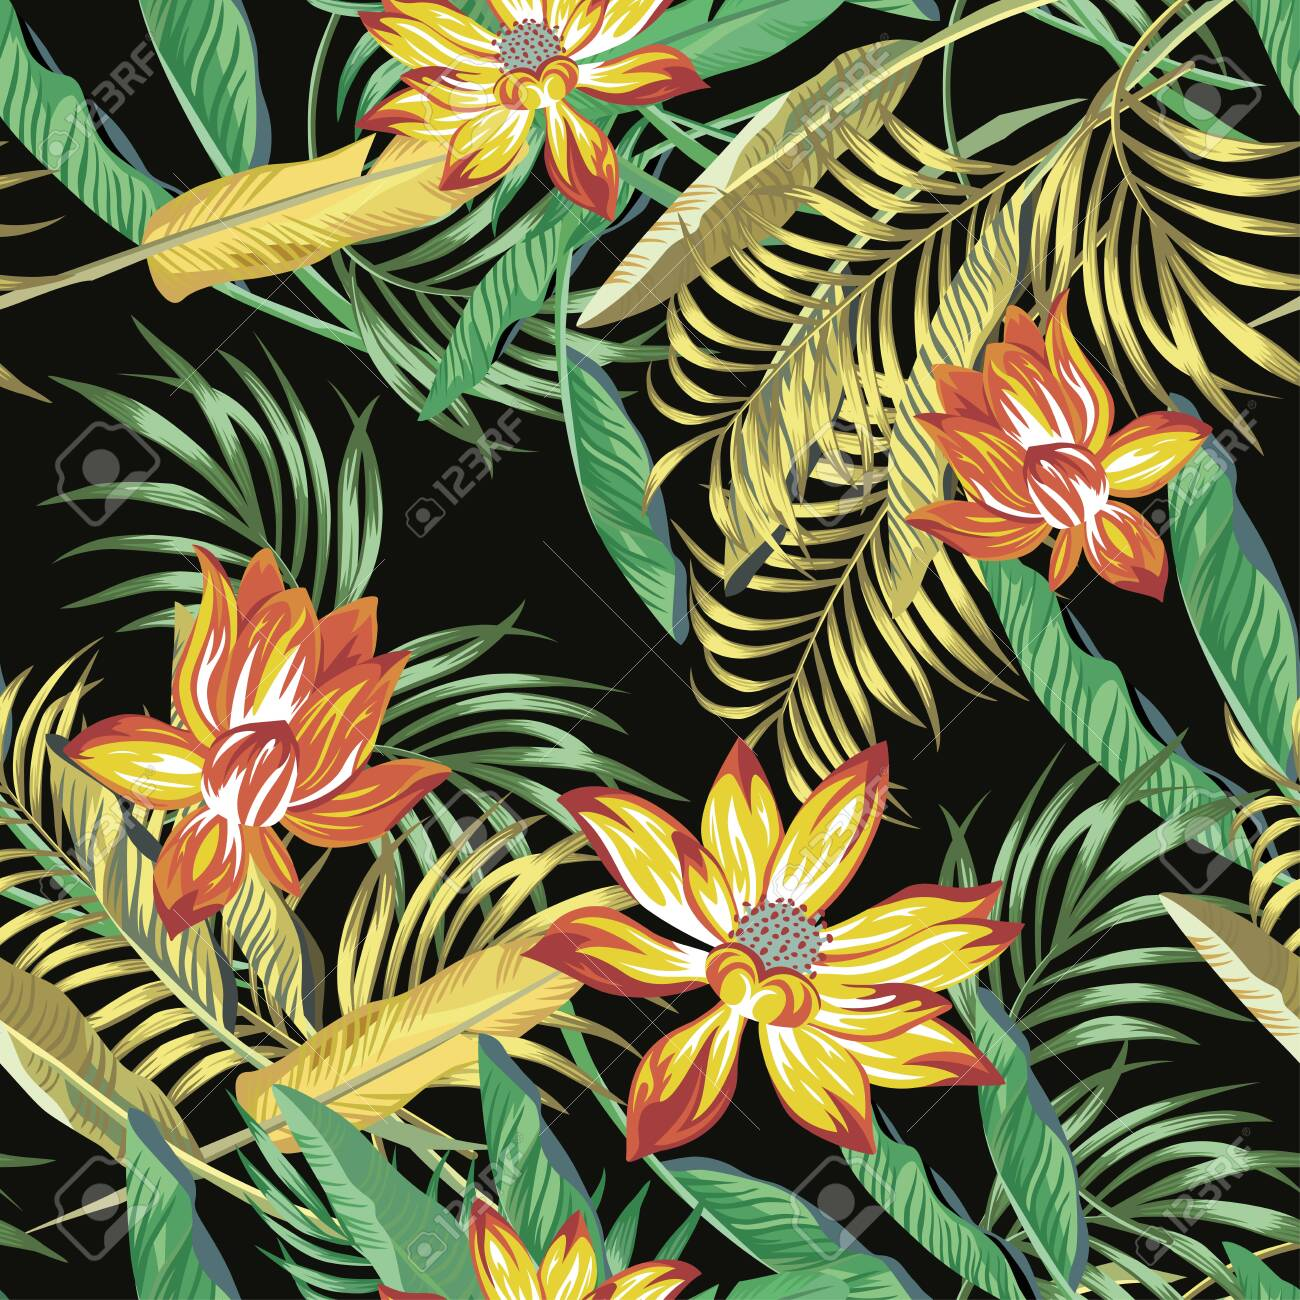 Beautiful fiery color exotic tropical flowers lotus, lily and green, golden color palm, banana, fern leaves seamless vector pattern on black background. Beach summer trendy illustration. - 149549324